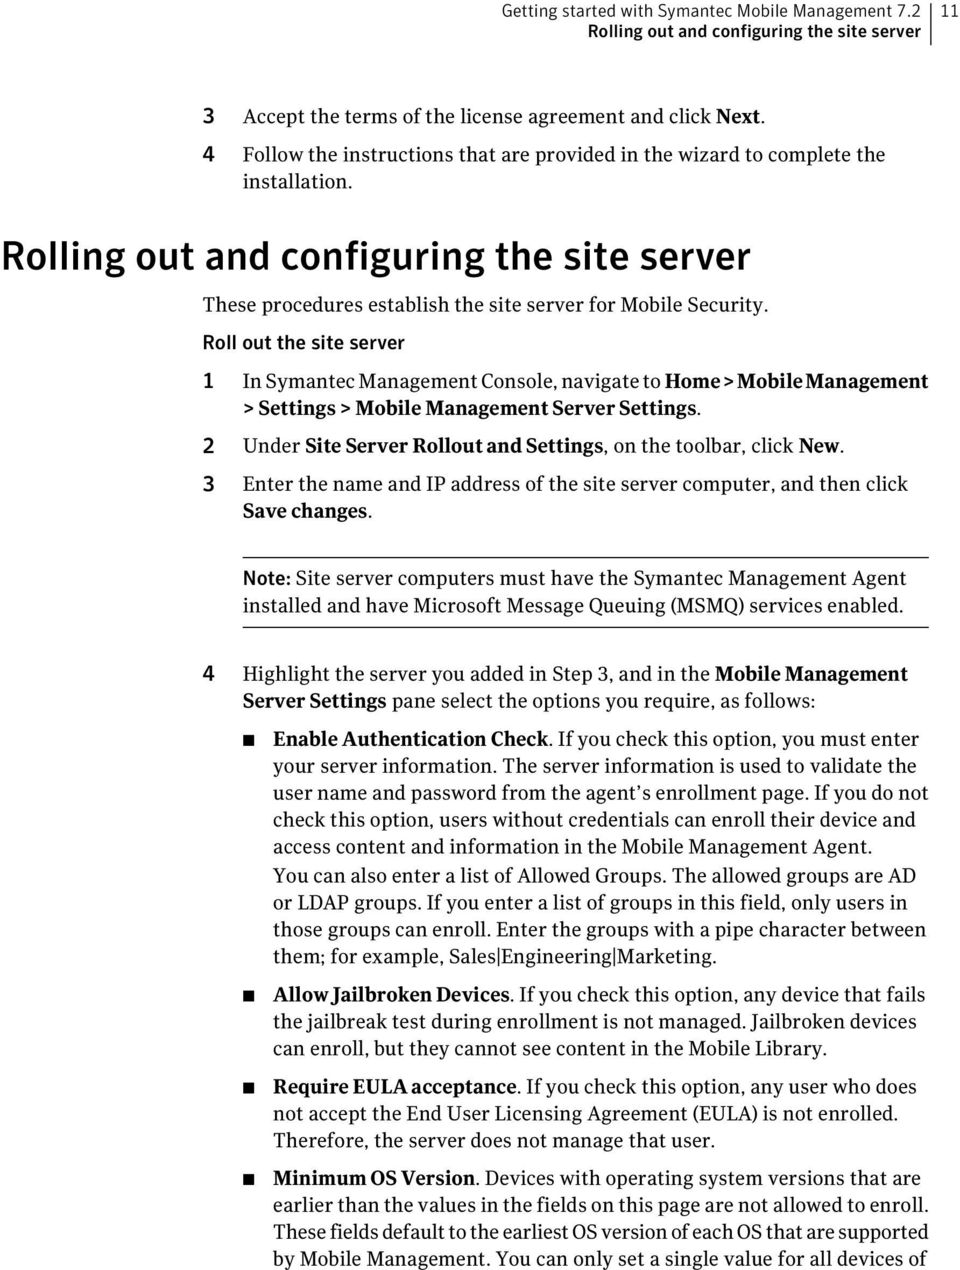 Roll out the site server 1 In Symantec Management Console, navigate to Home>MobileManagement > Settings > Mobile Management Server Settings.